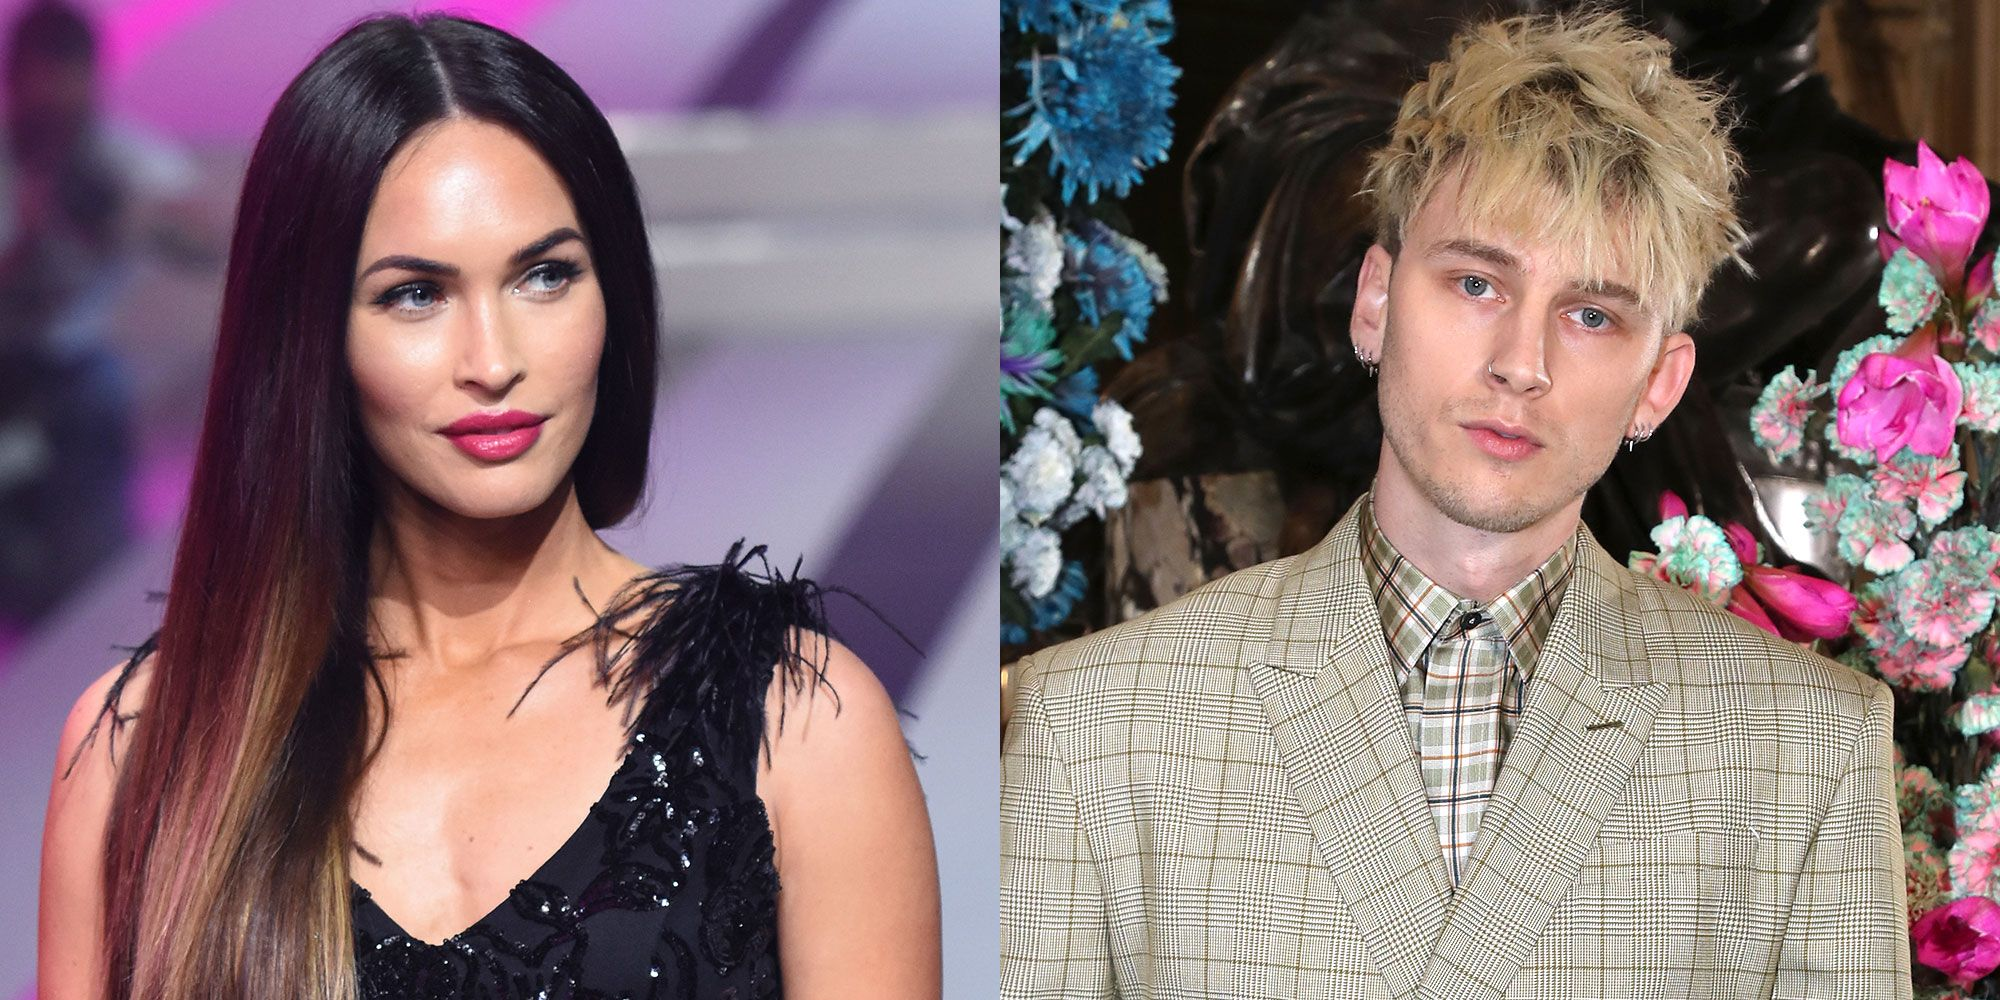 machine-gun-kellys-close-ones-reportedly-really-cautious-about-his-romance-with-megan-fox-heres-why